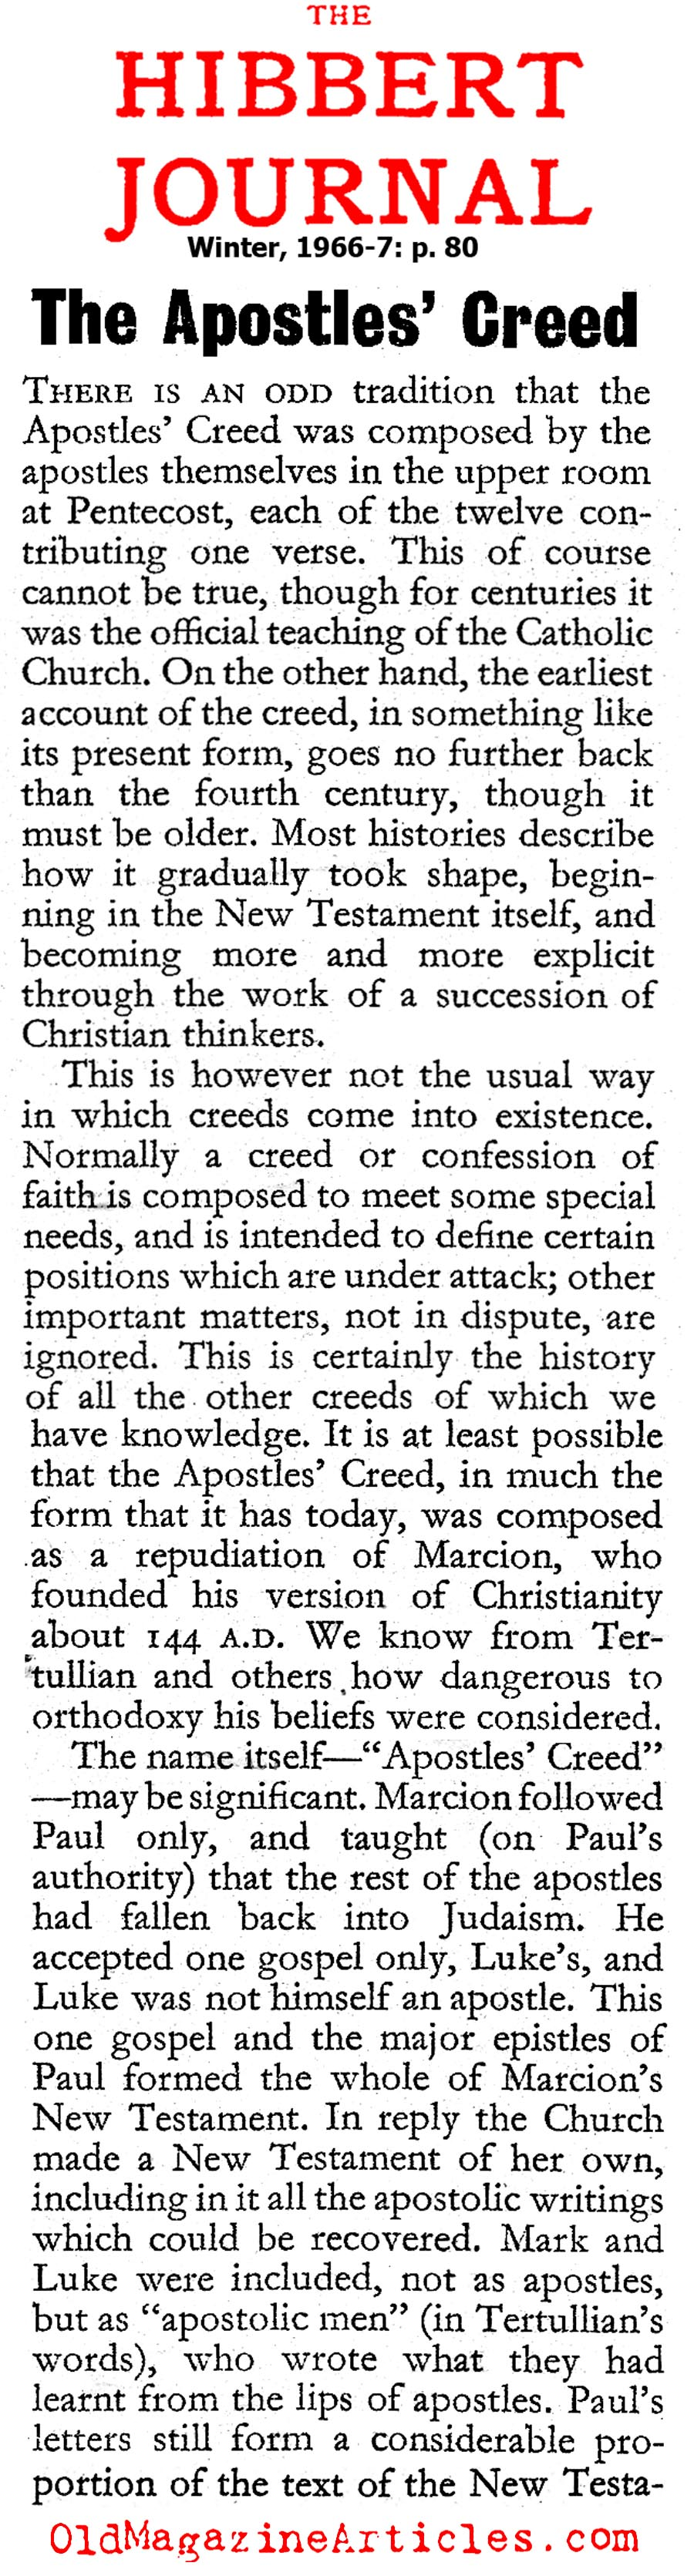 The Apostles' Creed (The Hibbert Journal, 1966)